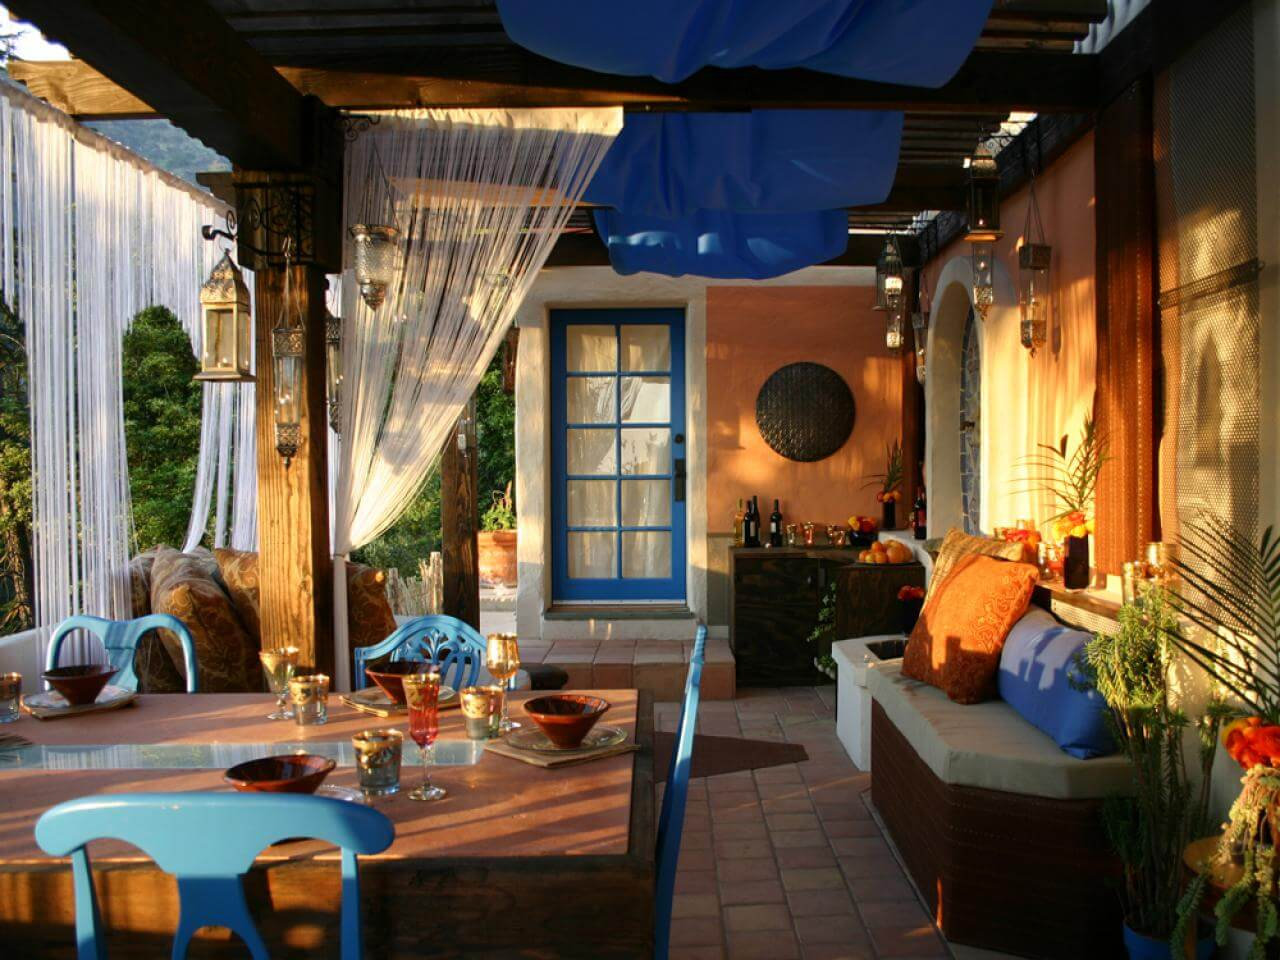 Dreamy Patio Dining Area with Blue Accents